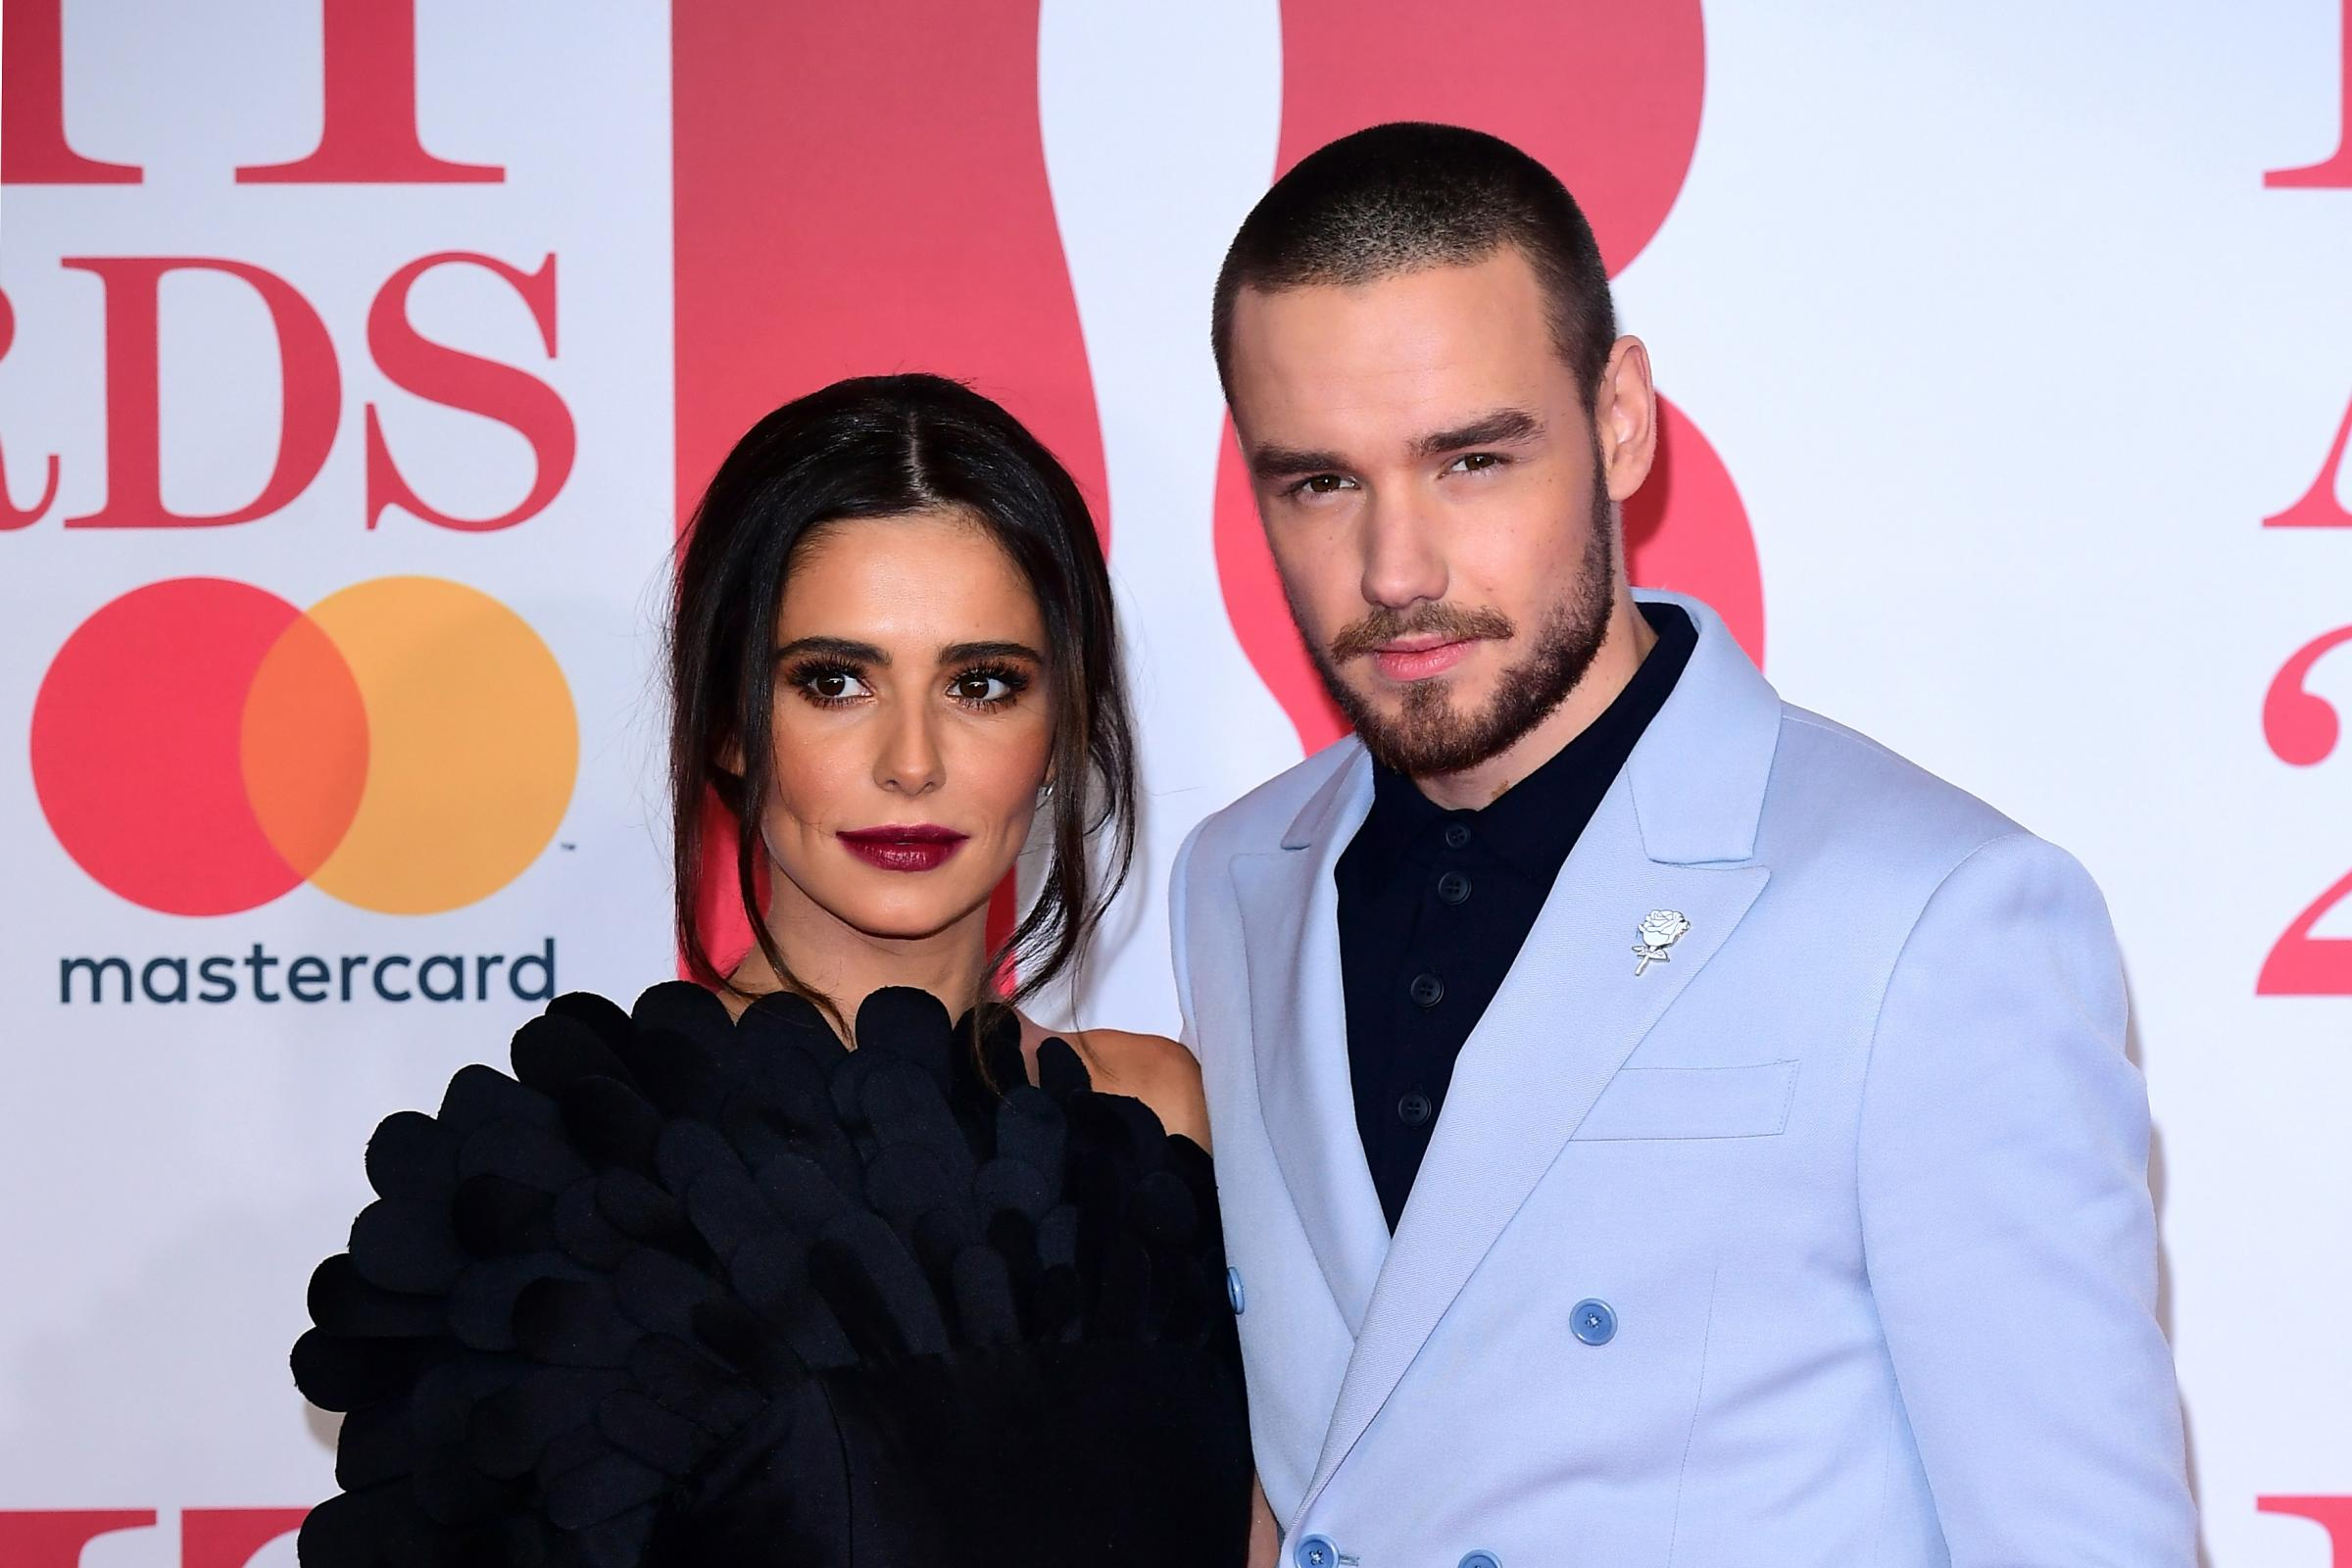 Cheryl and Liam Payne arrive together at the Brits amid split rumours (Ian West/PA)